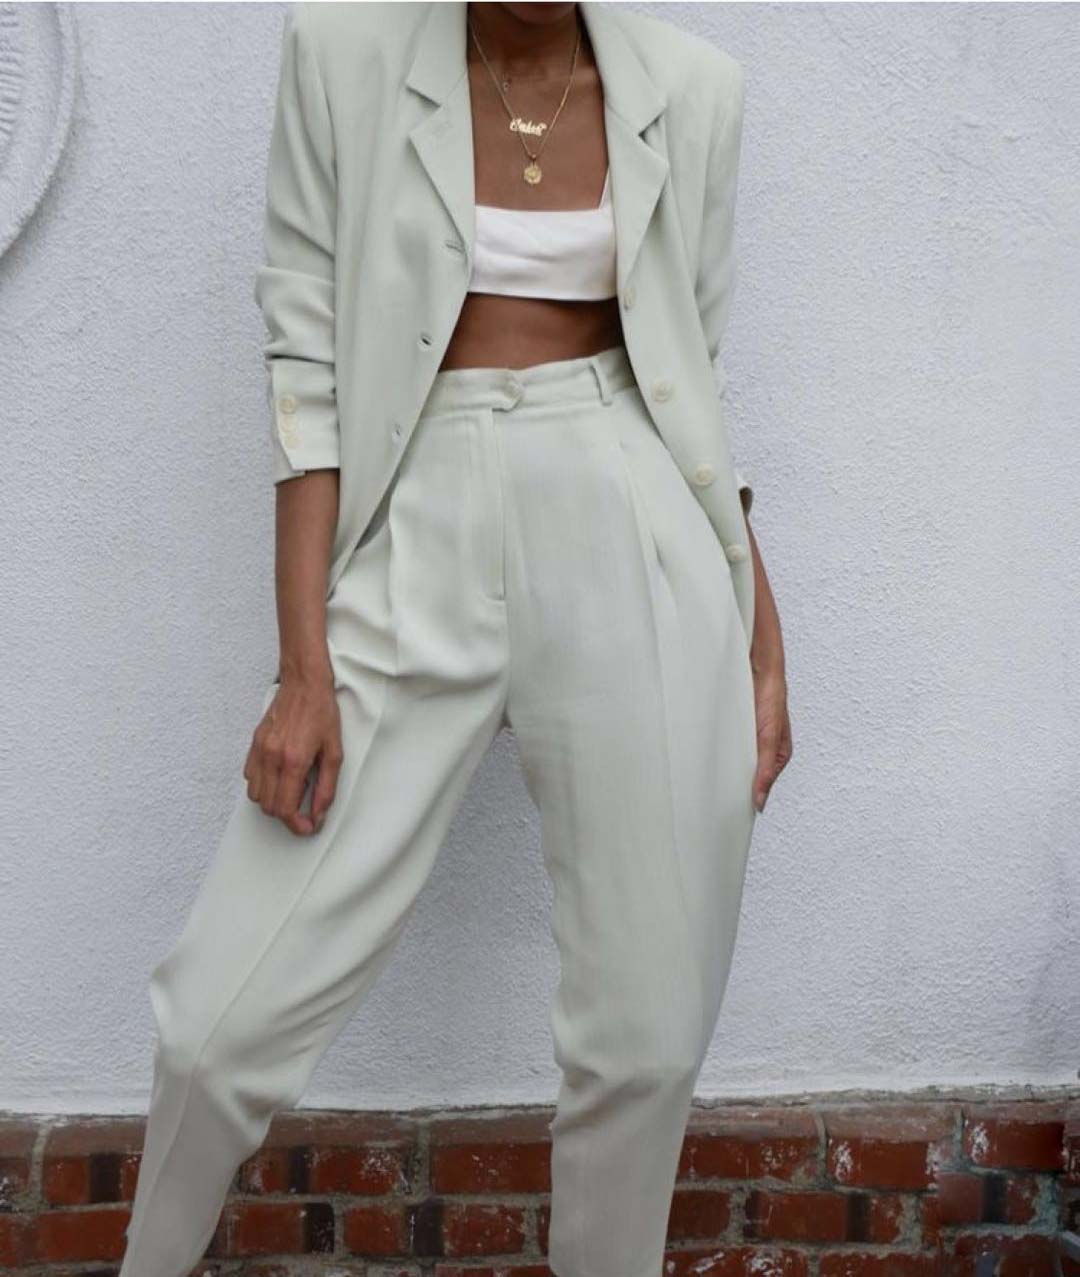 Jacket+Pants New White Womens Business Work Suits Female Office Uniform Slim Fit Ladies Formal Trouser Suits 2 Piece Sets Blazer